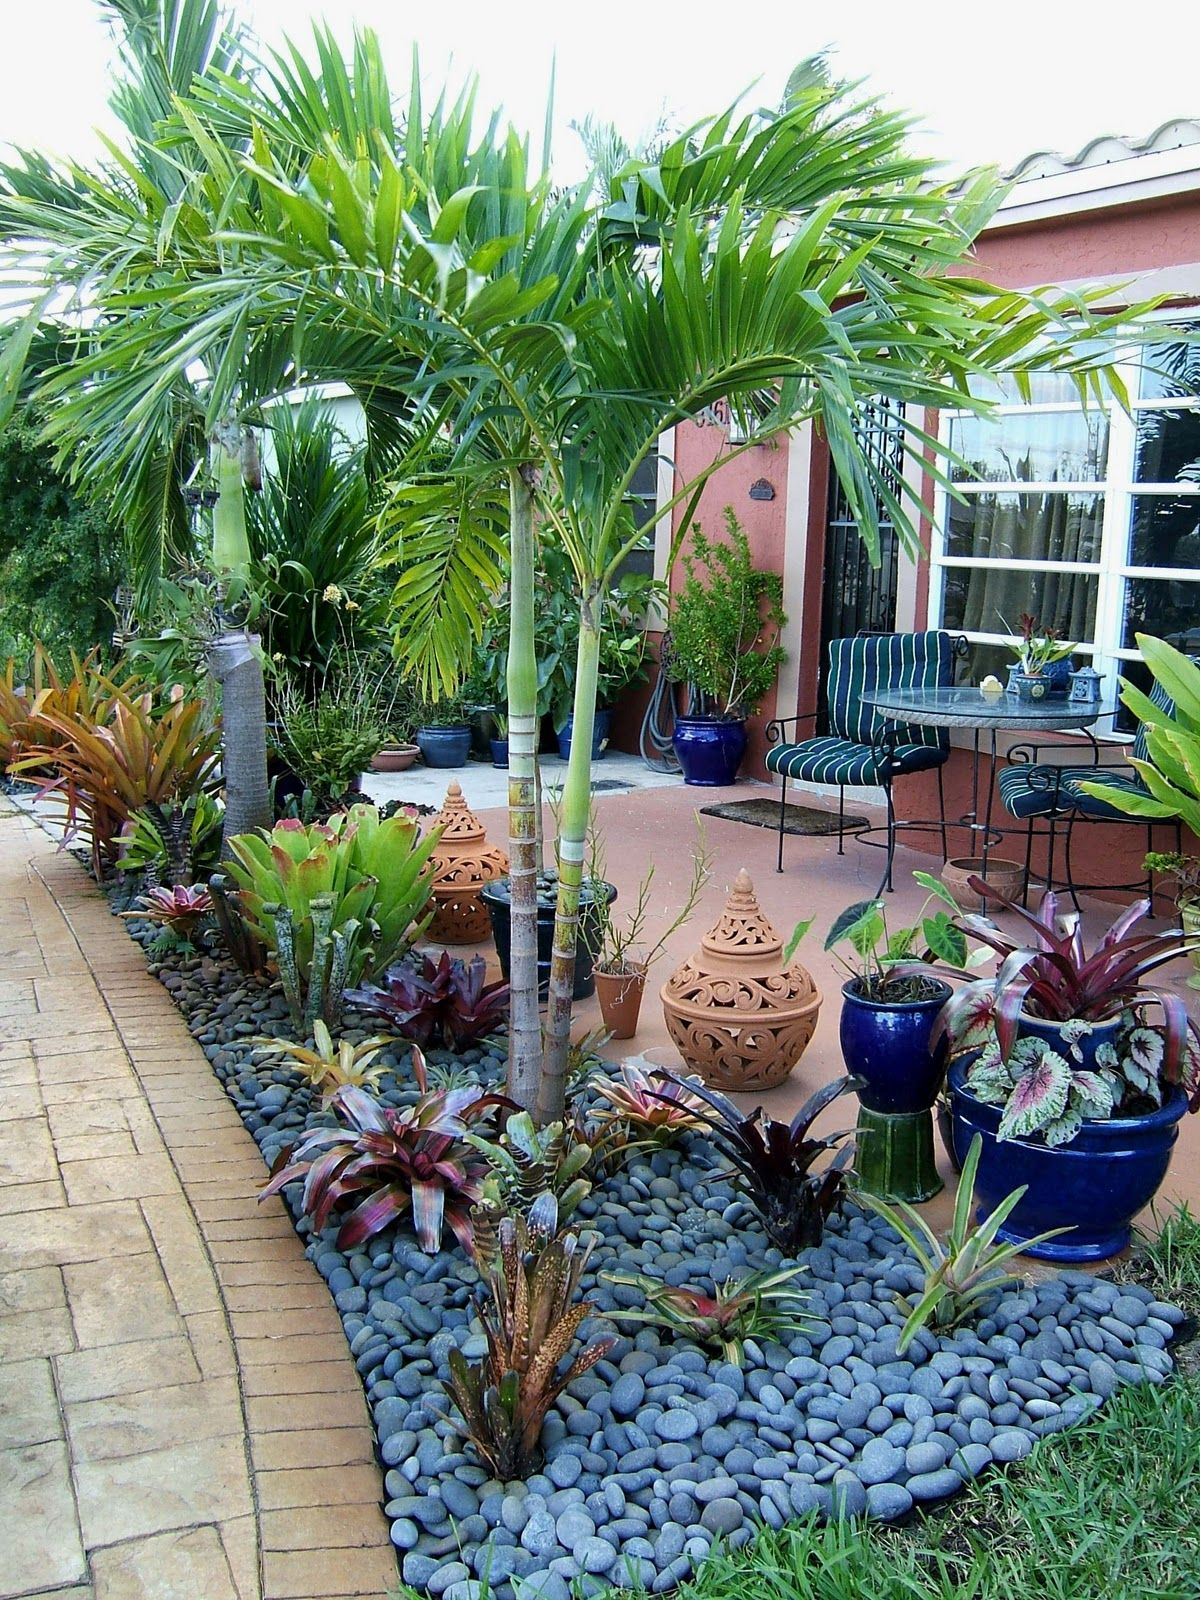 Gardening In South Florida Bromeliads In The Garden Gardening within 15 Some of the Coolest Initiatives of How to Make Florida Landscaping Ideas For Backyard